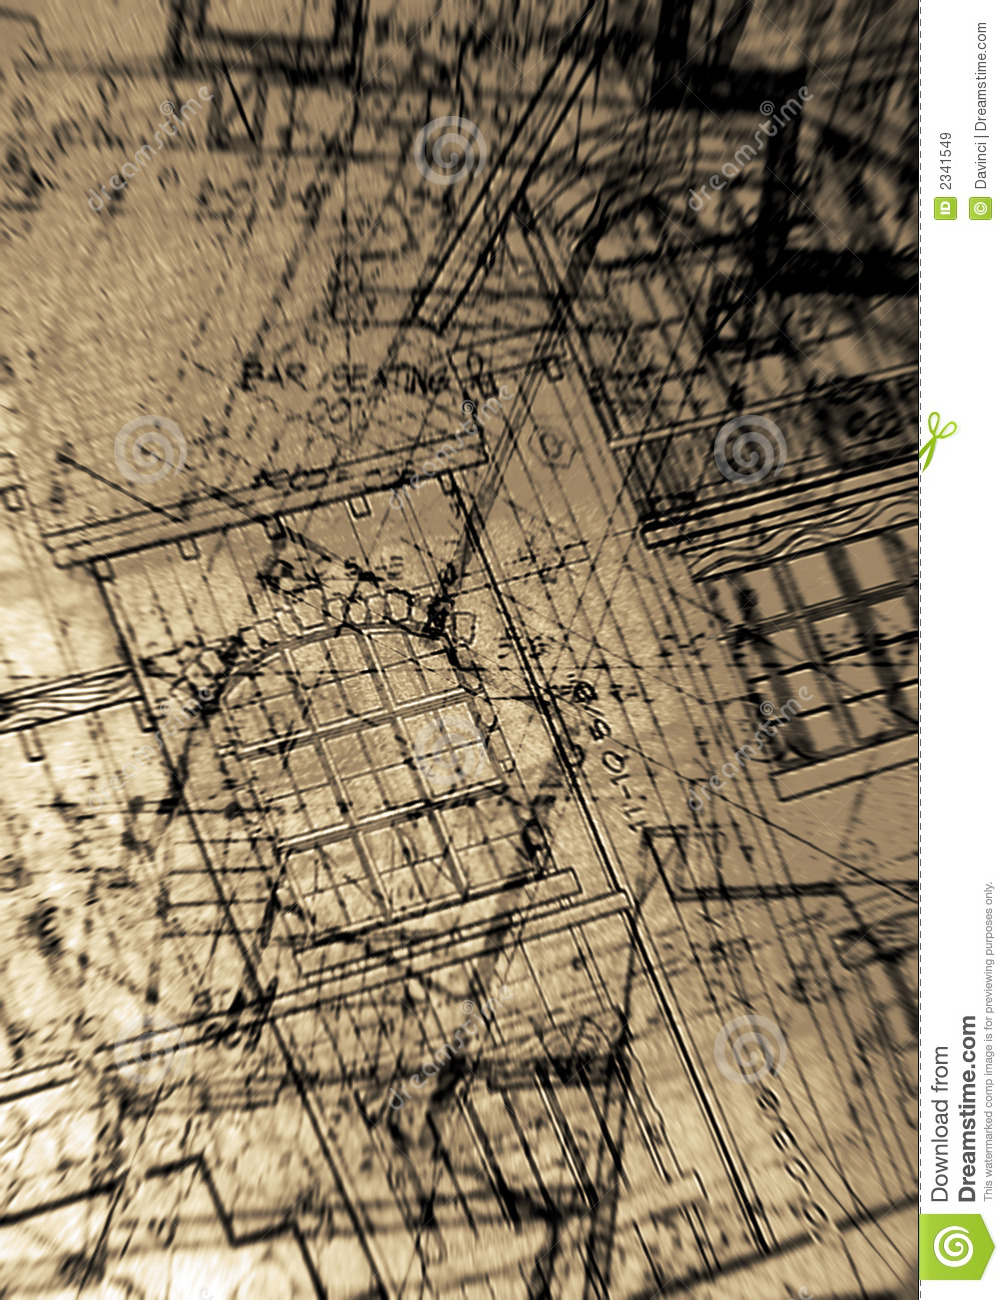 Phenomenal Abstract Plans Stock Image Image Of Drawing Grid Download Free Architecture Designs Embacsunscenecom